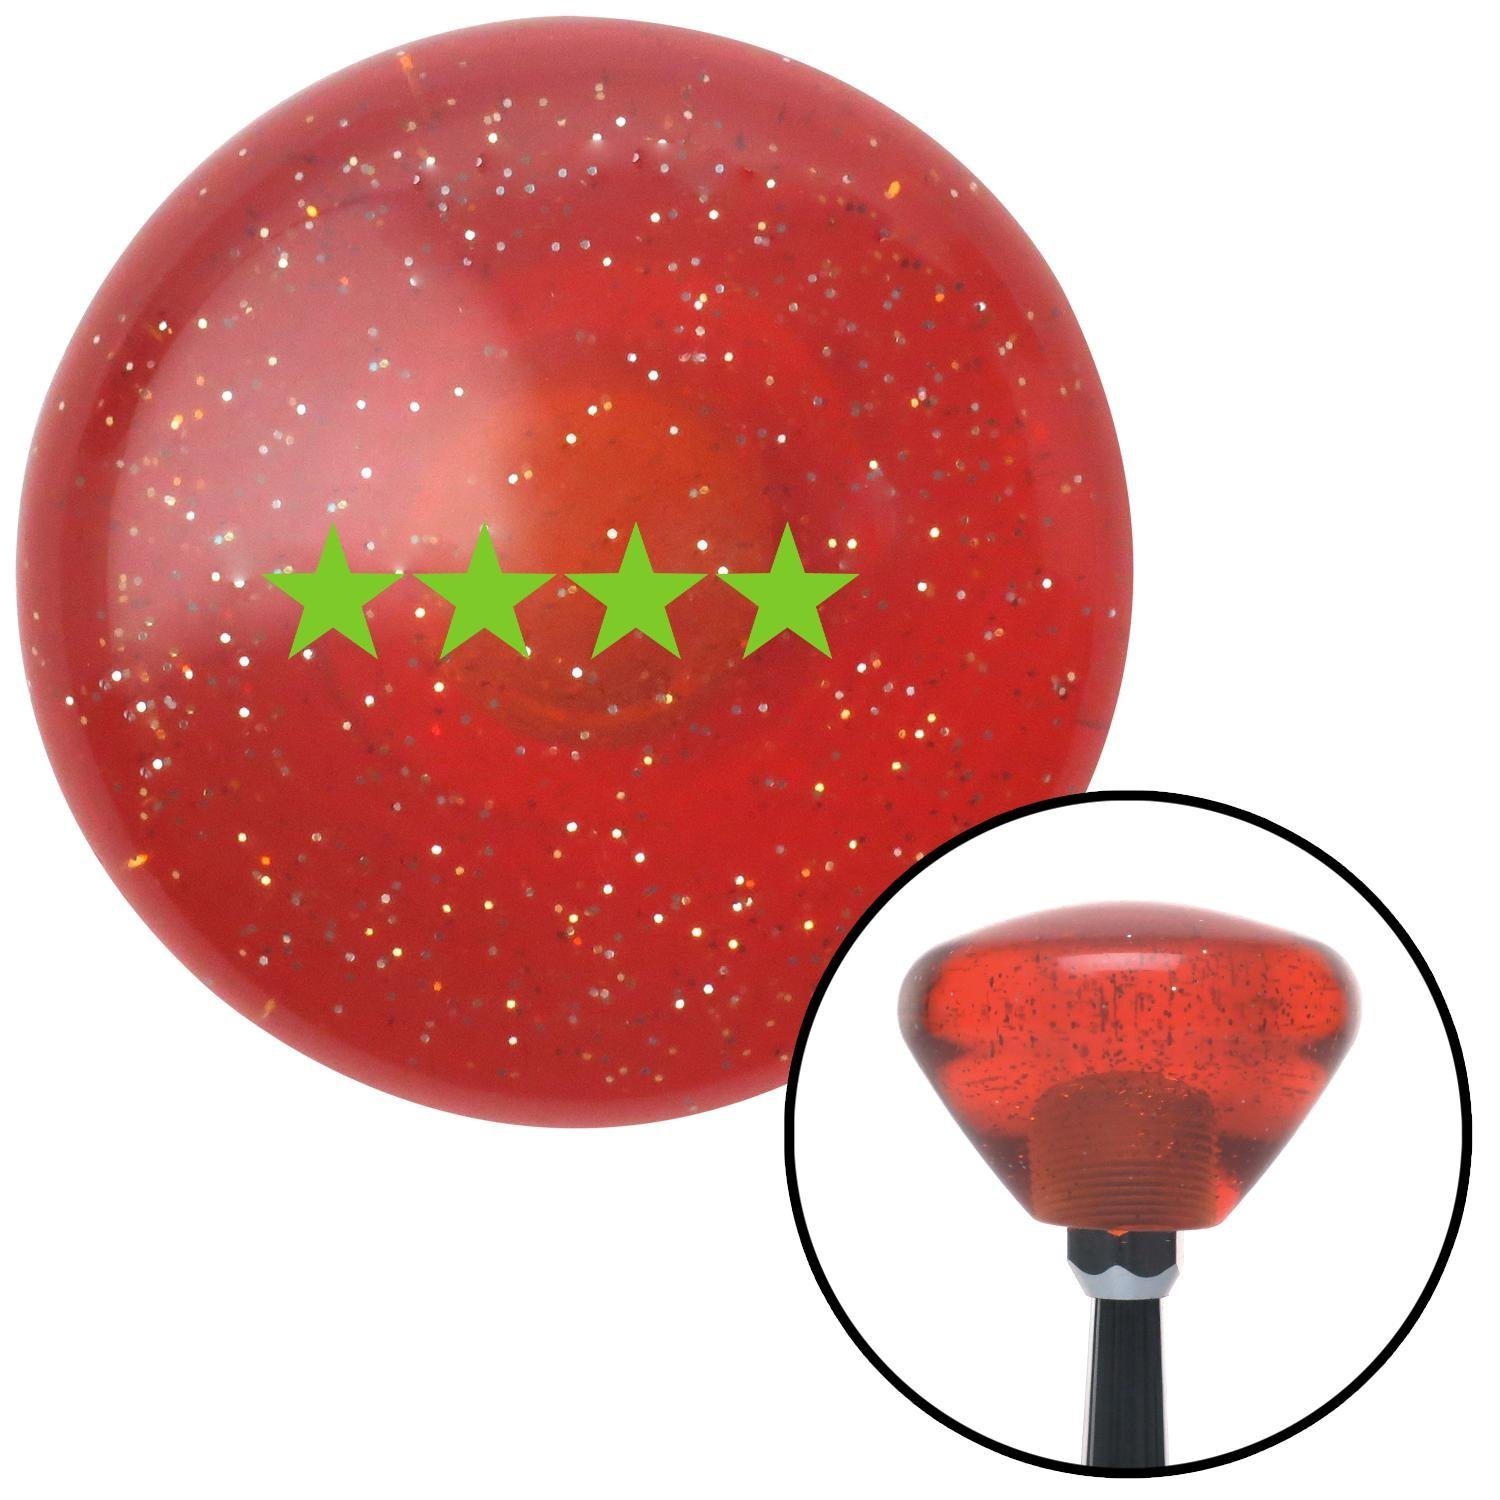 Green Admiral American Shifter 181812 Orange Retro Metal Flake Shift Knob with M16 x 1.5 Insert